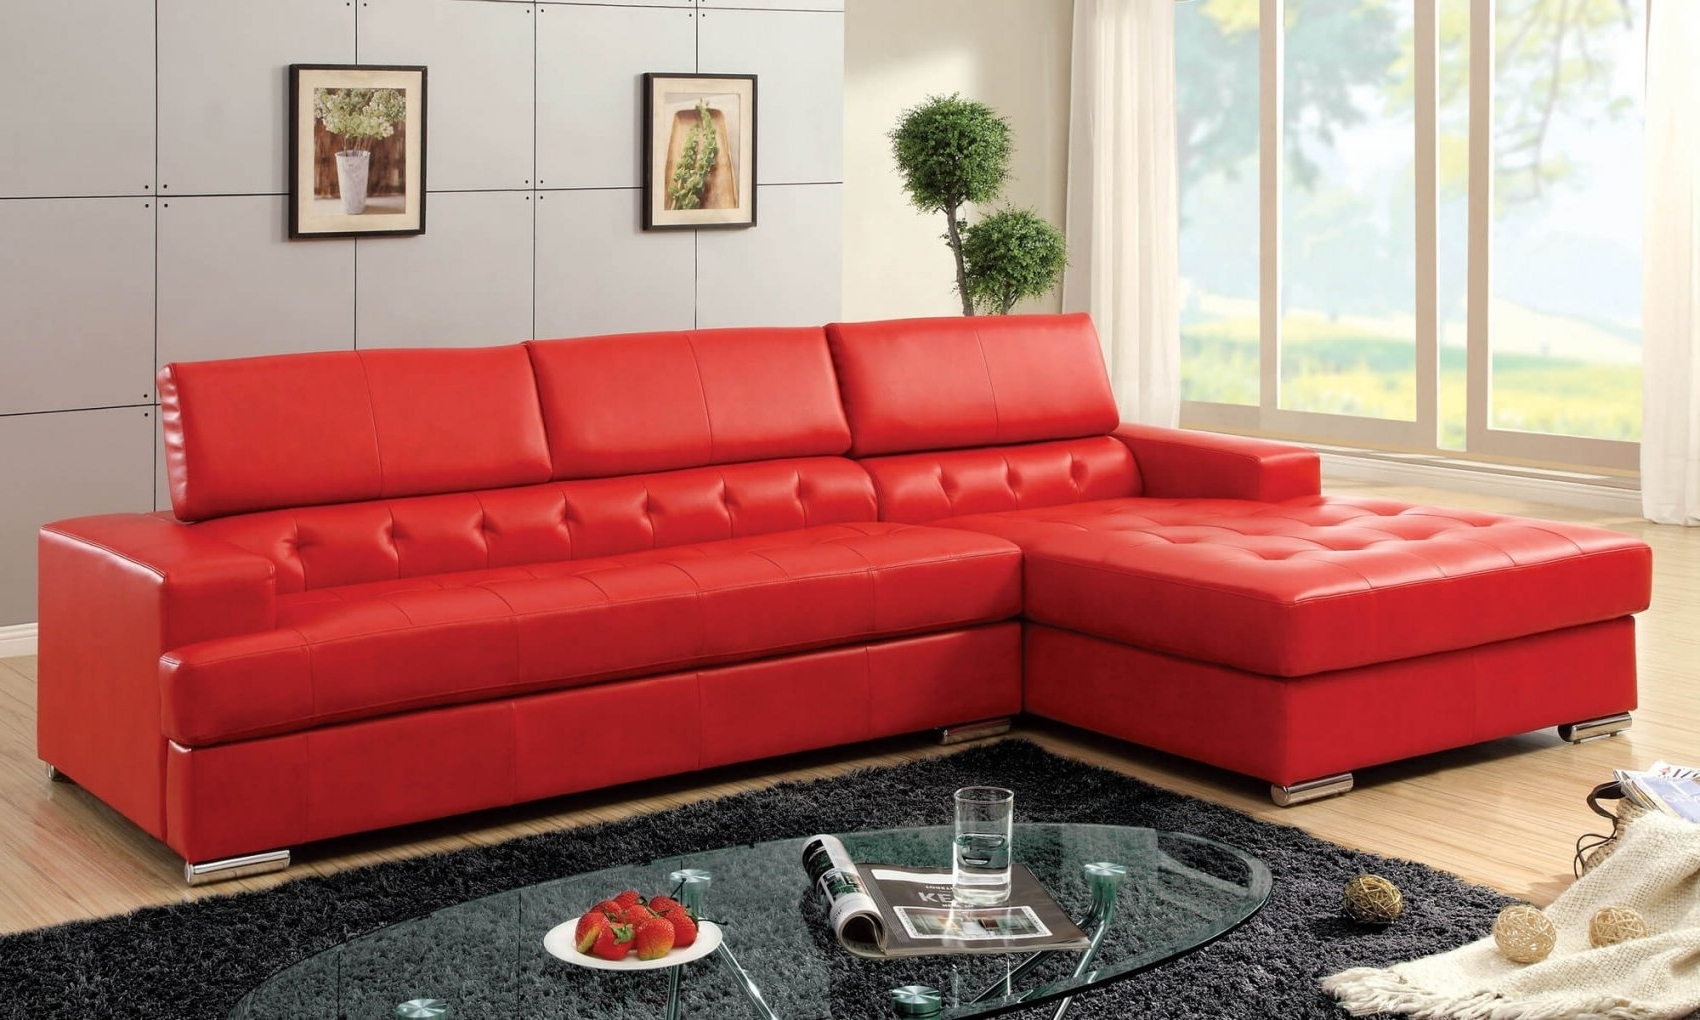 Widely Used Red Leather Couches Inside Red Leather Sectional Sofa Contemporary – Best Sectional In (View 9 of 15)